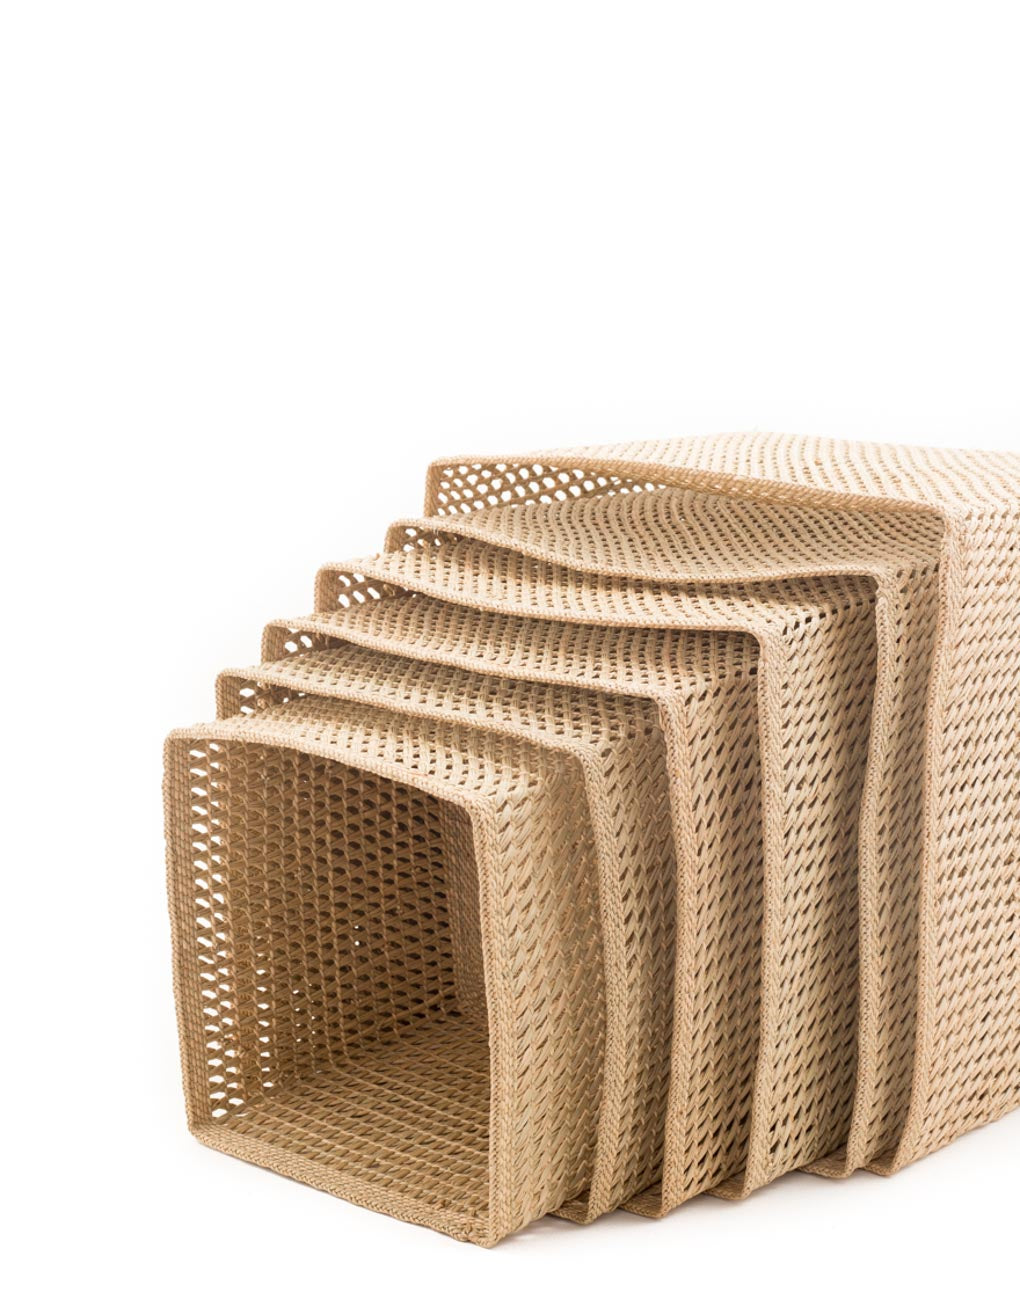 Nesting Square Open Weave Iringa Basket In Natural Side View Close Up | The Little Market